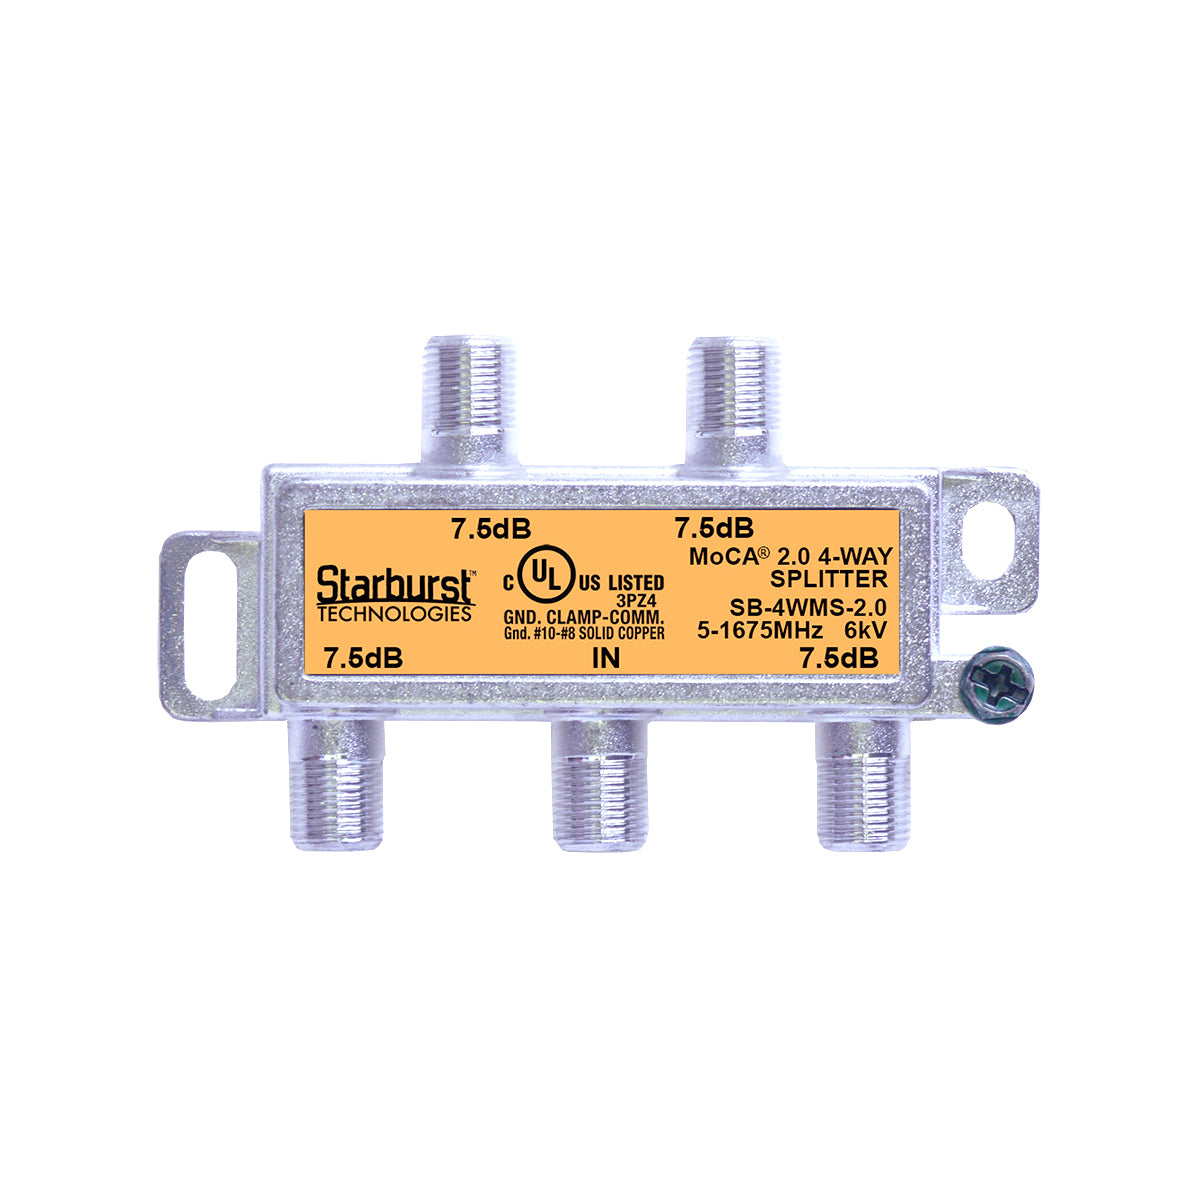 SB-4WMS-2.0 - 4 Way Horizontal Coaxial Cable Splitter, 6Kv Rated, 5-1675 MHz Wide Band For Ethernet Over Coax Universal Home Networking, Compatible With 1GHz, MoCA 2.0, HPNA and DOCSIS 3.1 Networks